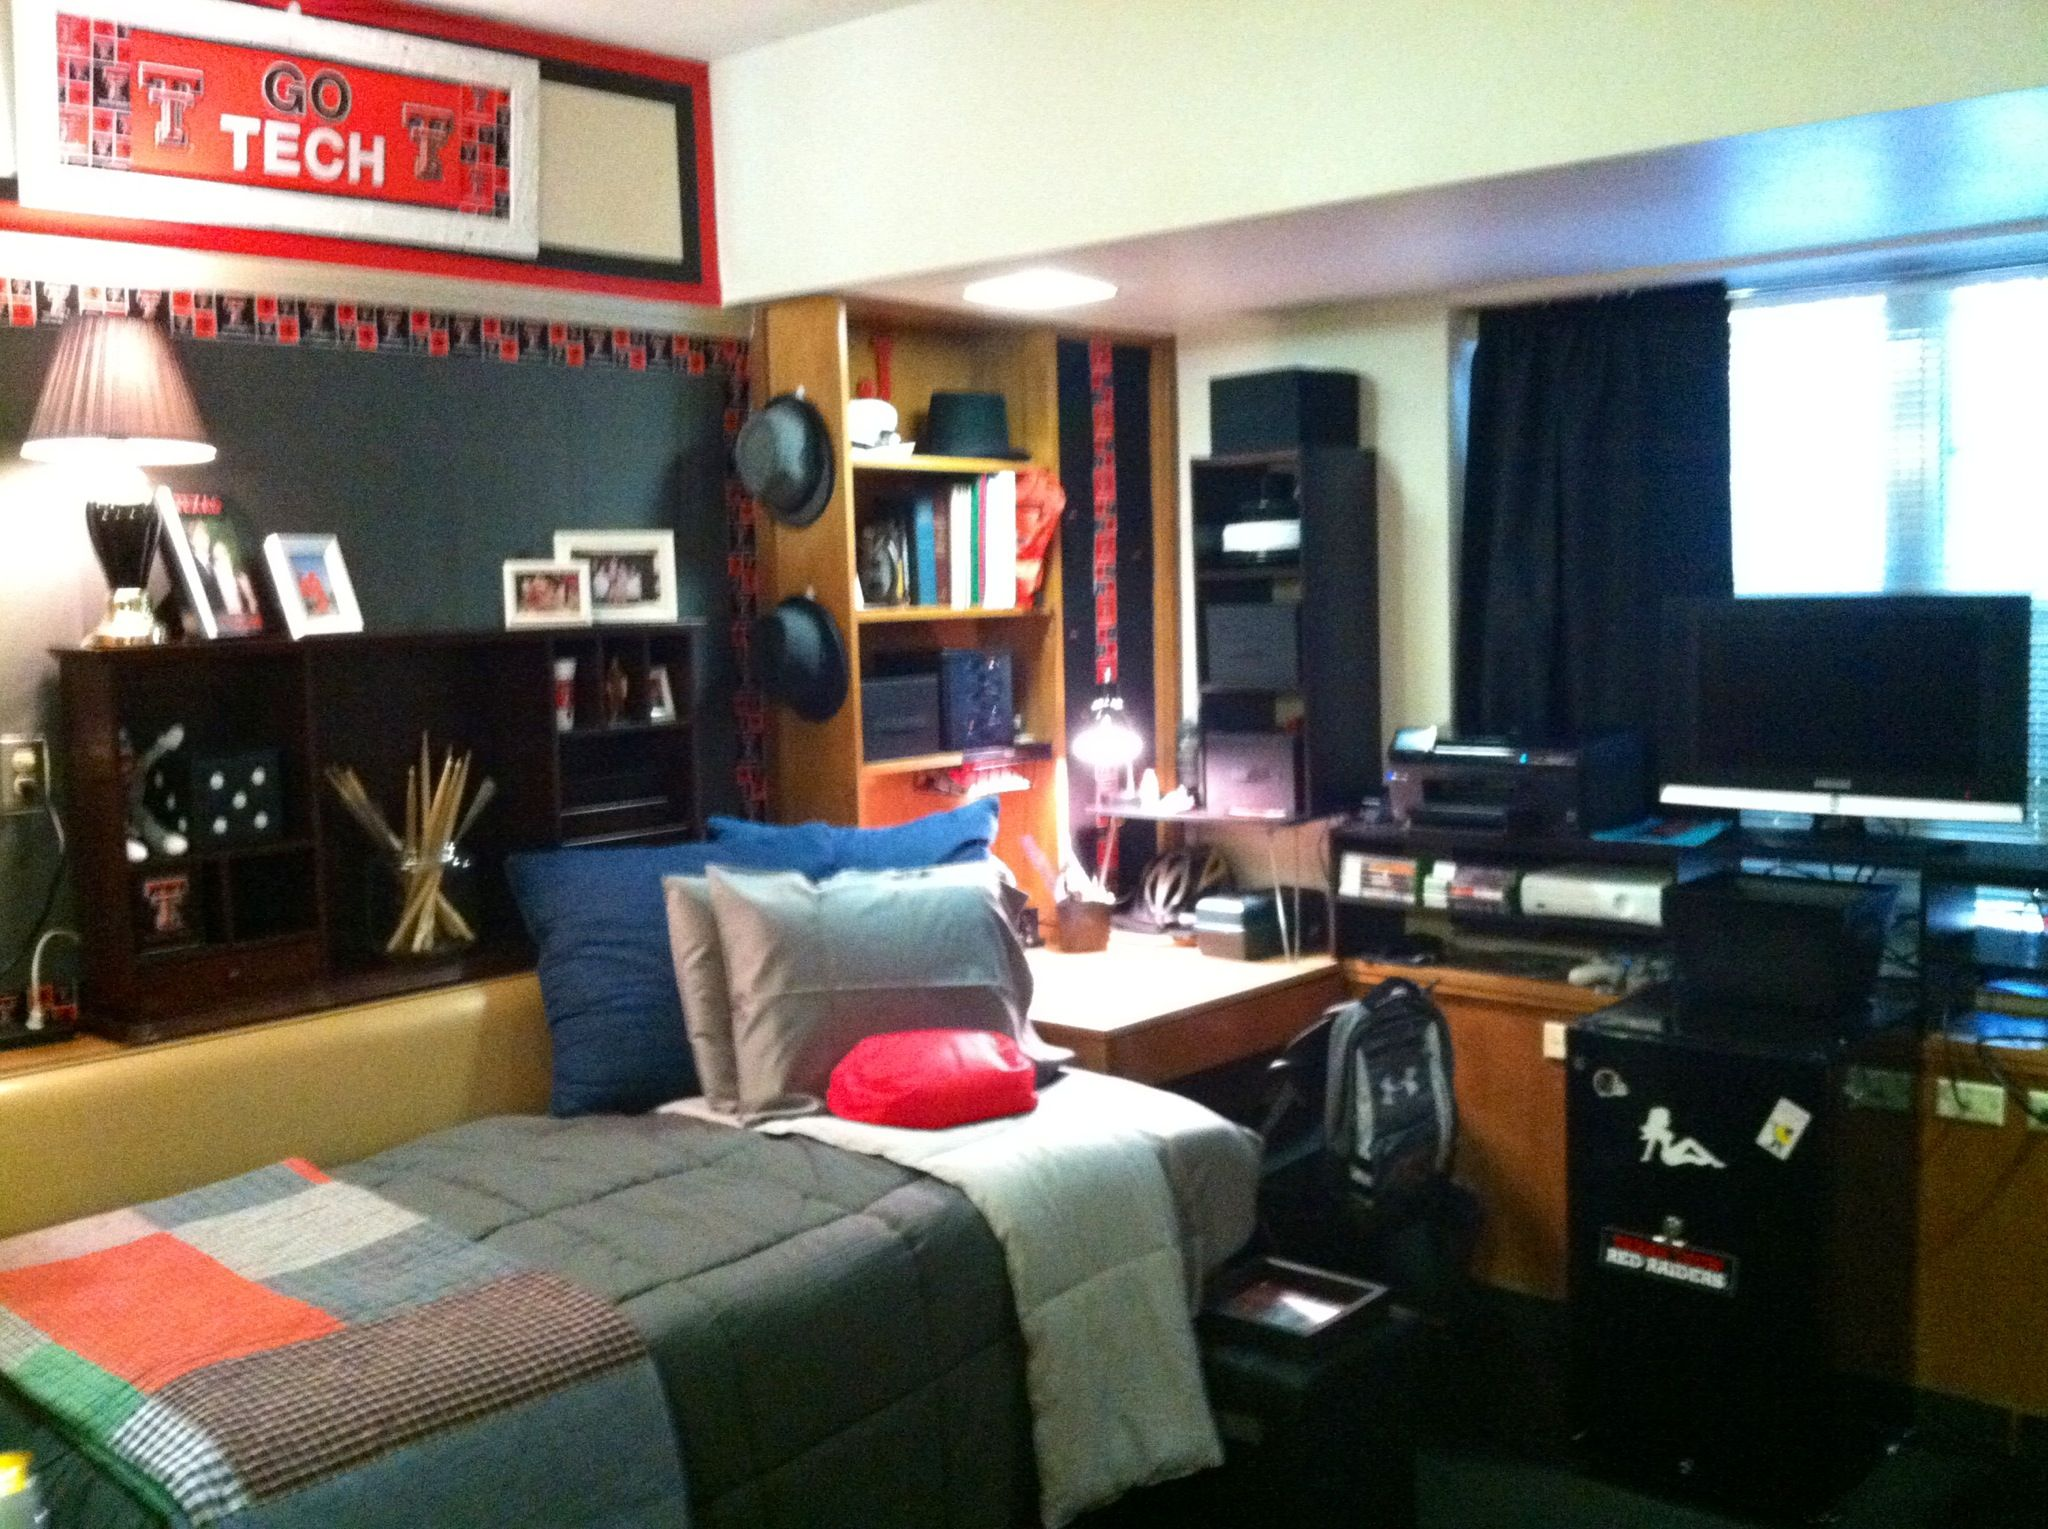 James Dorm Room At Texas Tech Dorm Room Pinterest